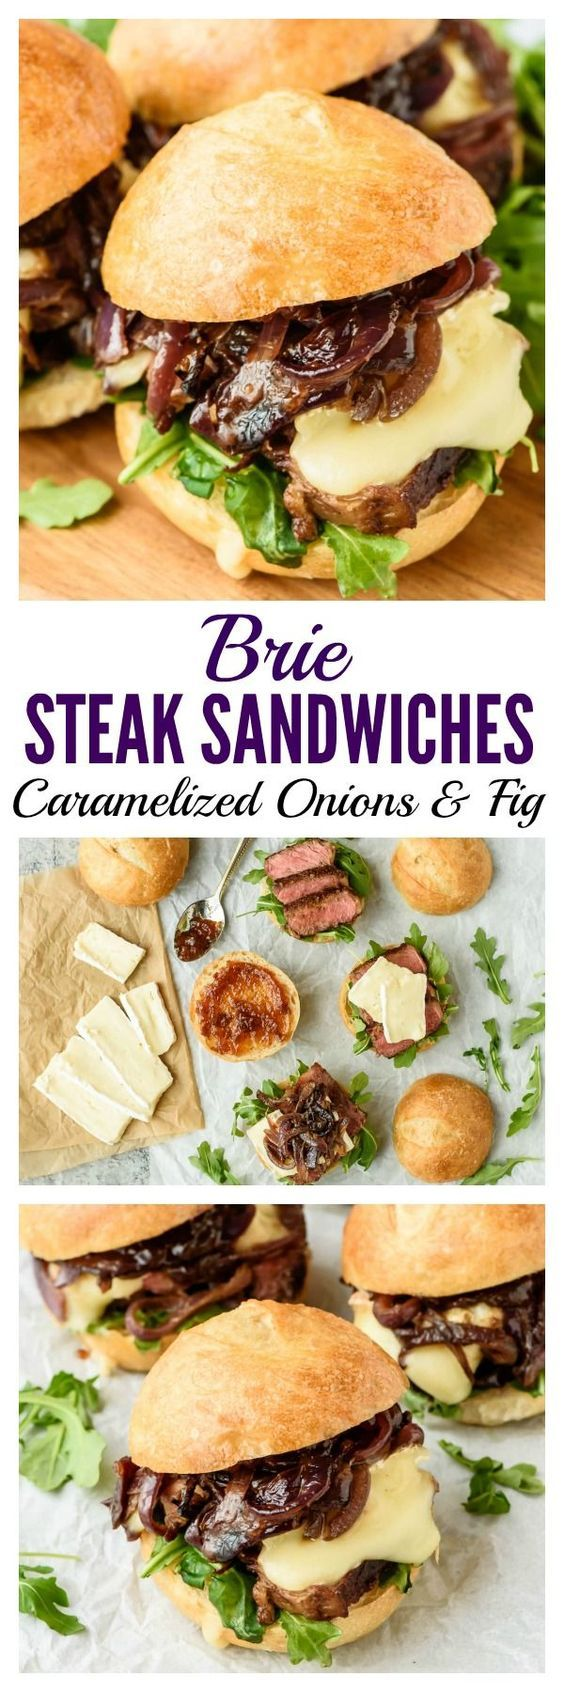 Juicy and tender steak sandwich sliders with creamy Brie cheese, caramelized onions, and fig jam. A sweet, savory flavor combination that's out of this world! Easy recipe to make in bulk for a party or for two for a special dinner.